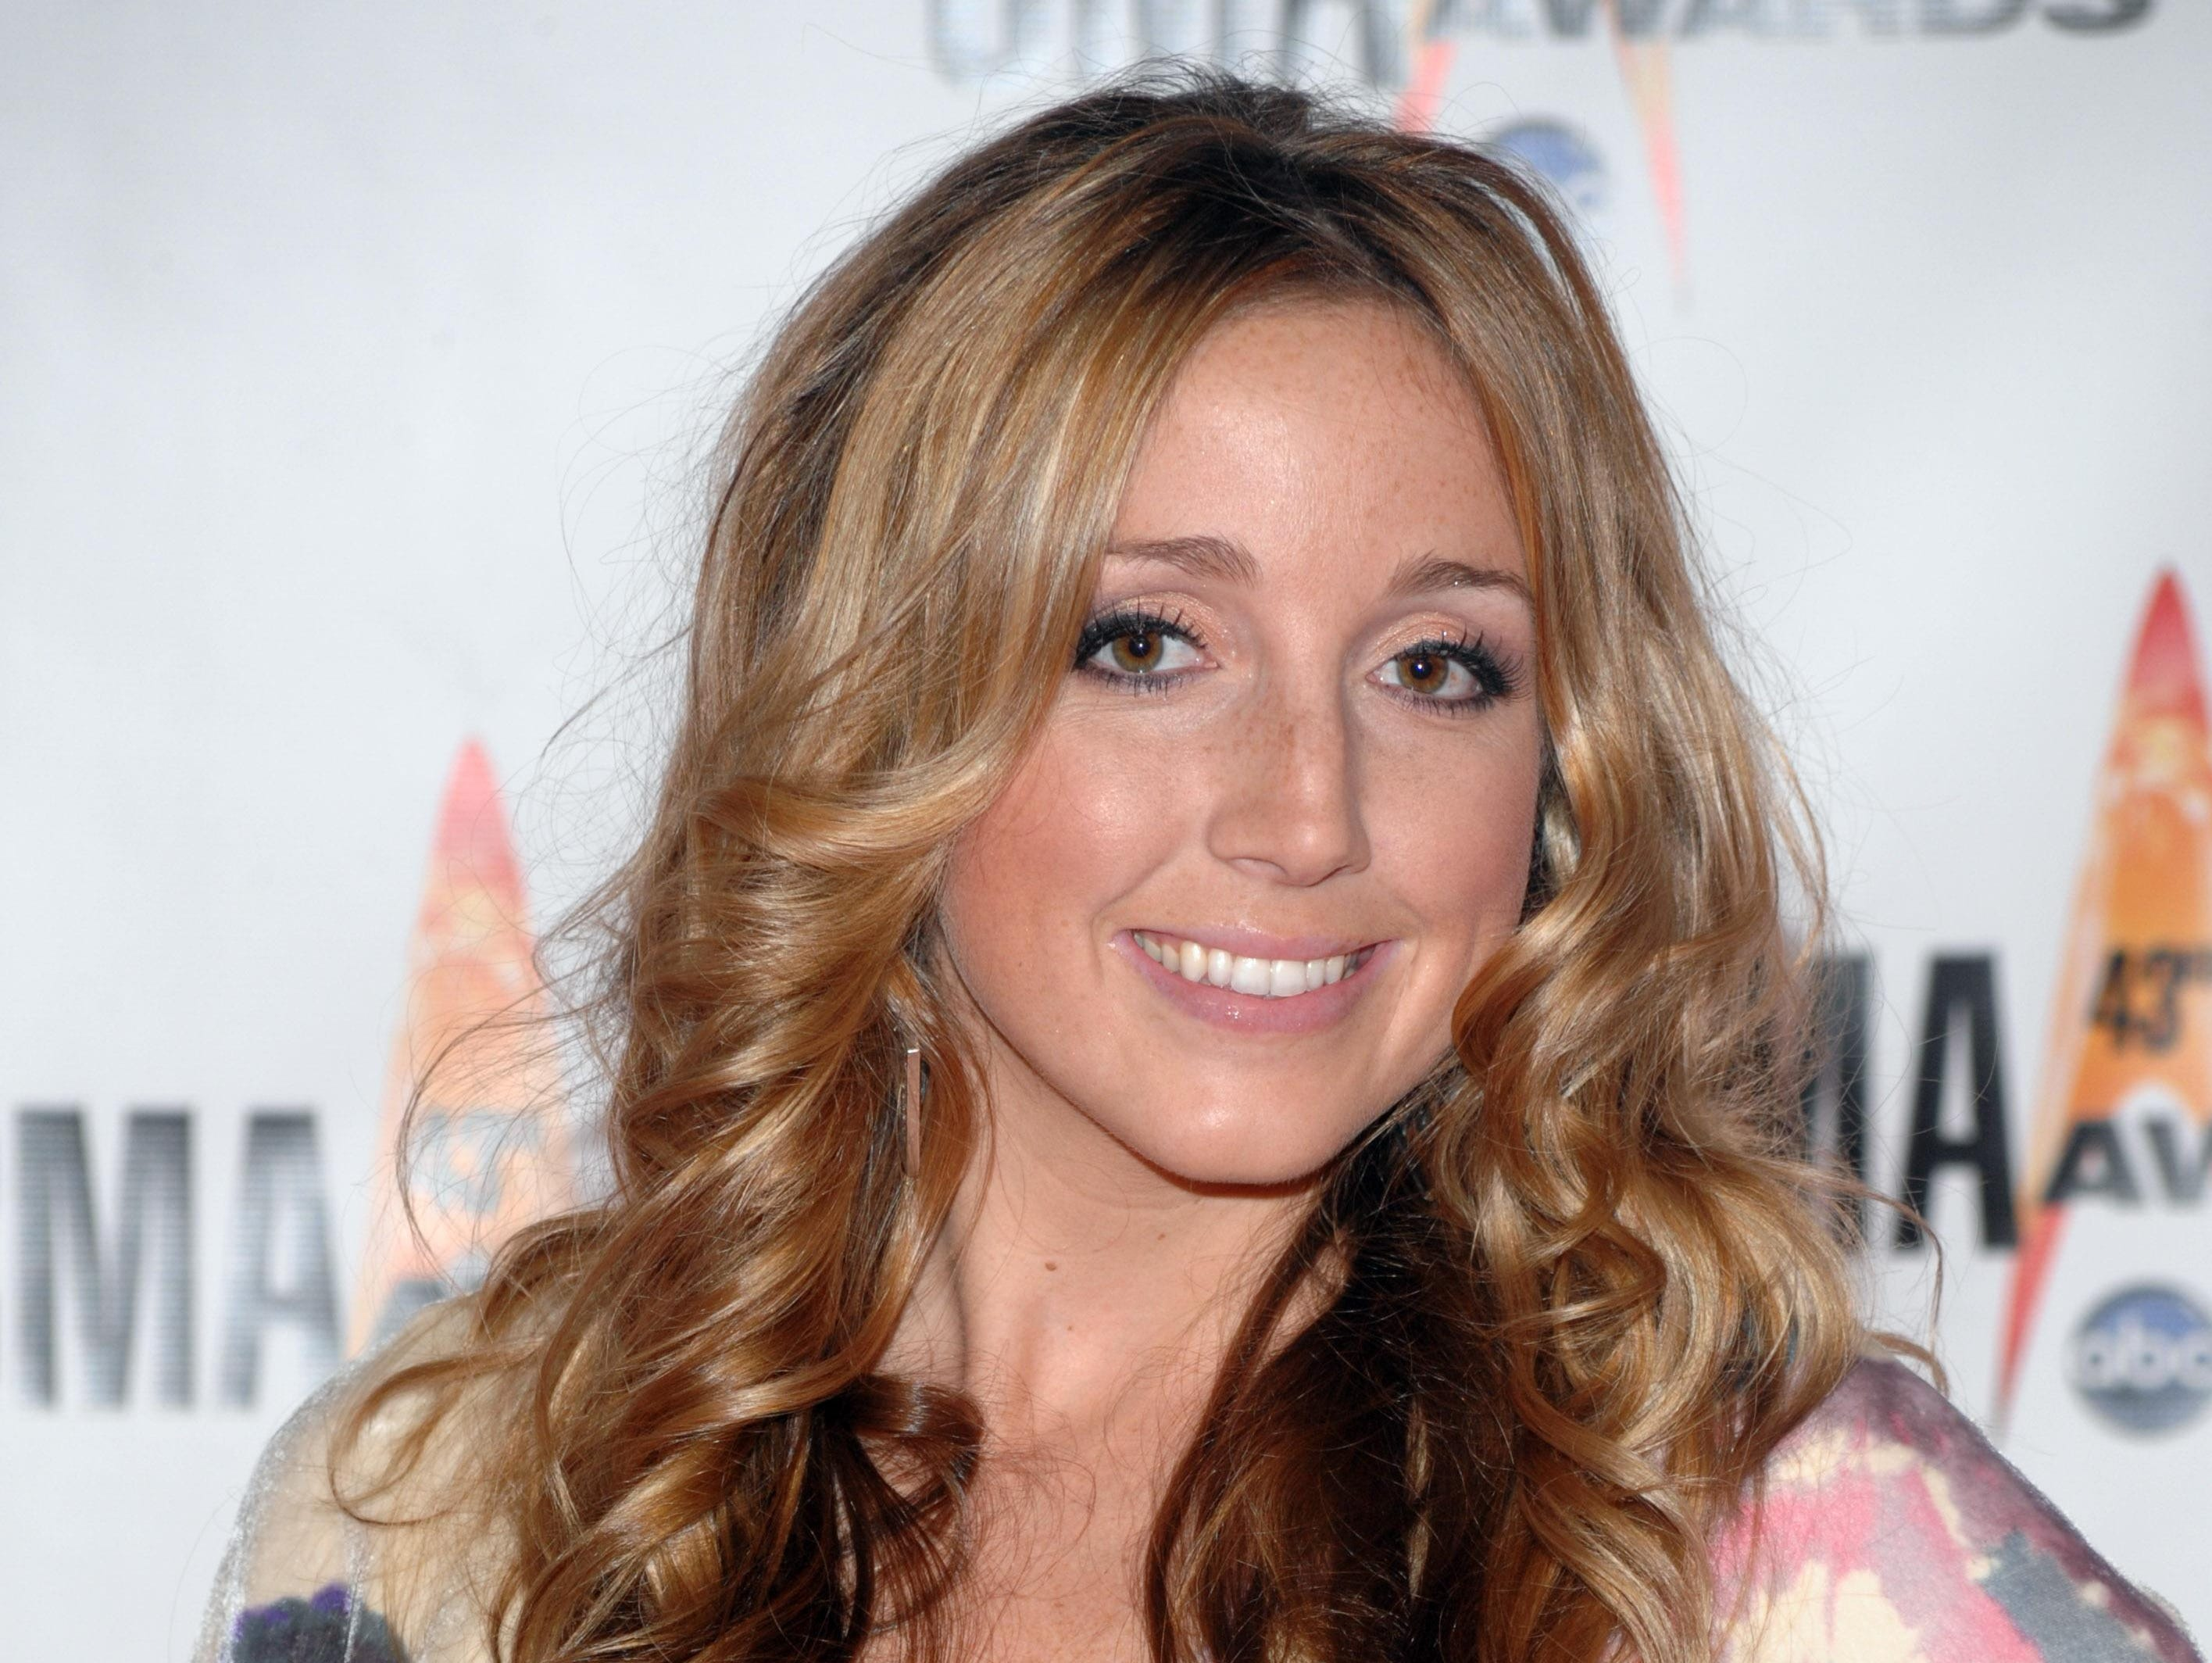 Recording artist Ashley Monroe attends the 43rd Annual Country Music Awards in Nashville, Tenn. Wednesday, Nov. 11, 2009.